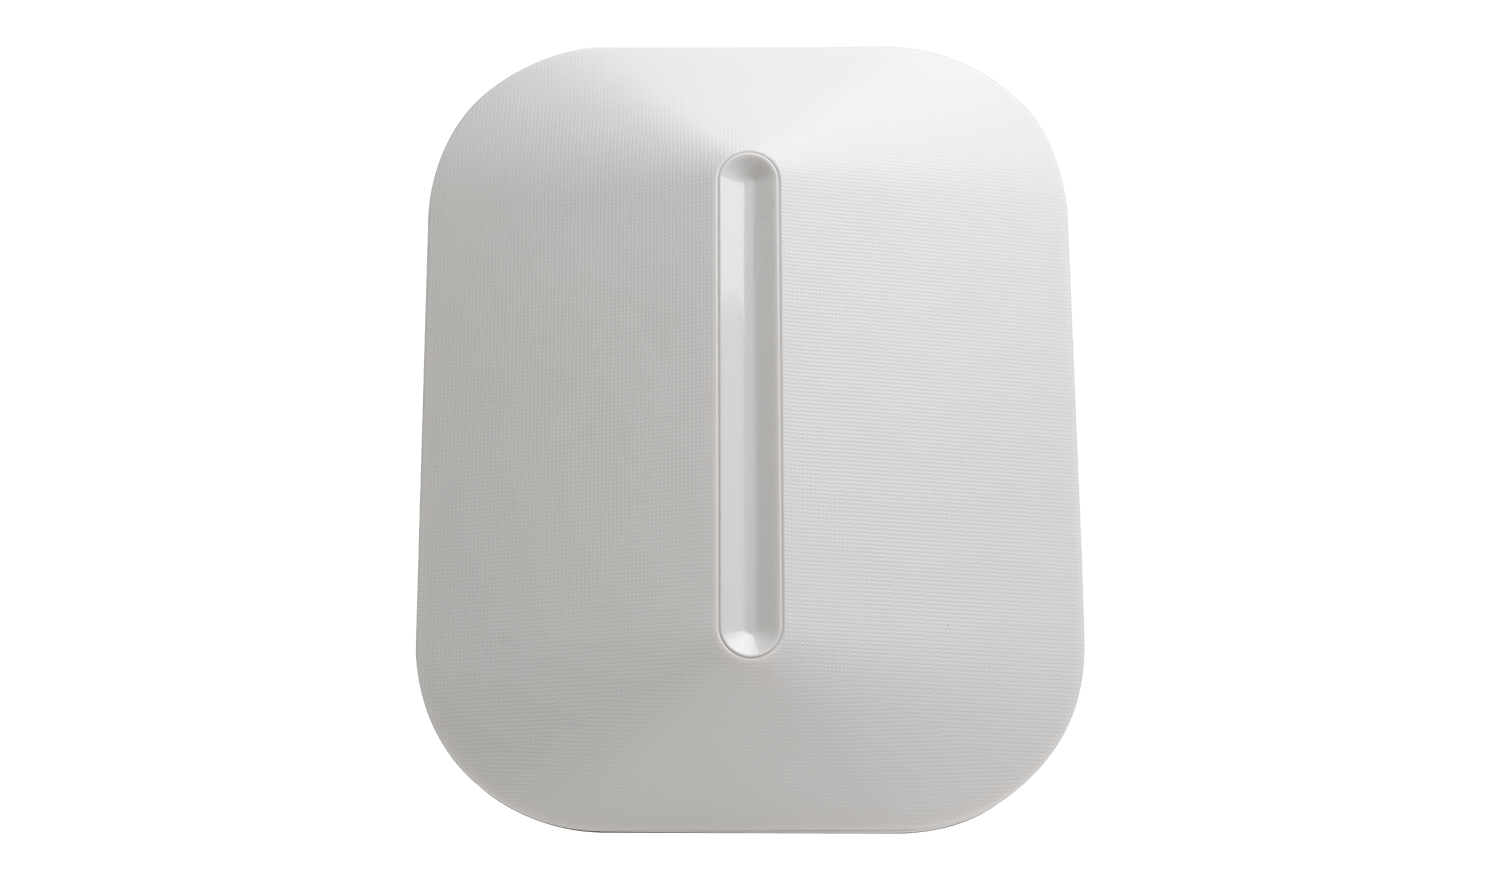 Product_Images-314444_Plastic_Inside_Antenna_Front_Web